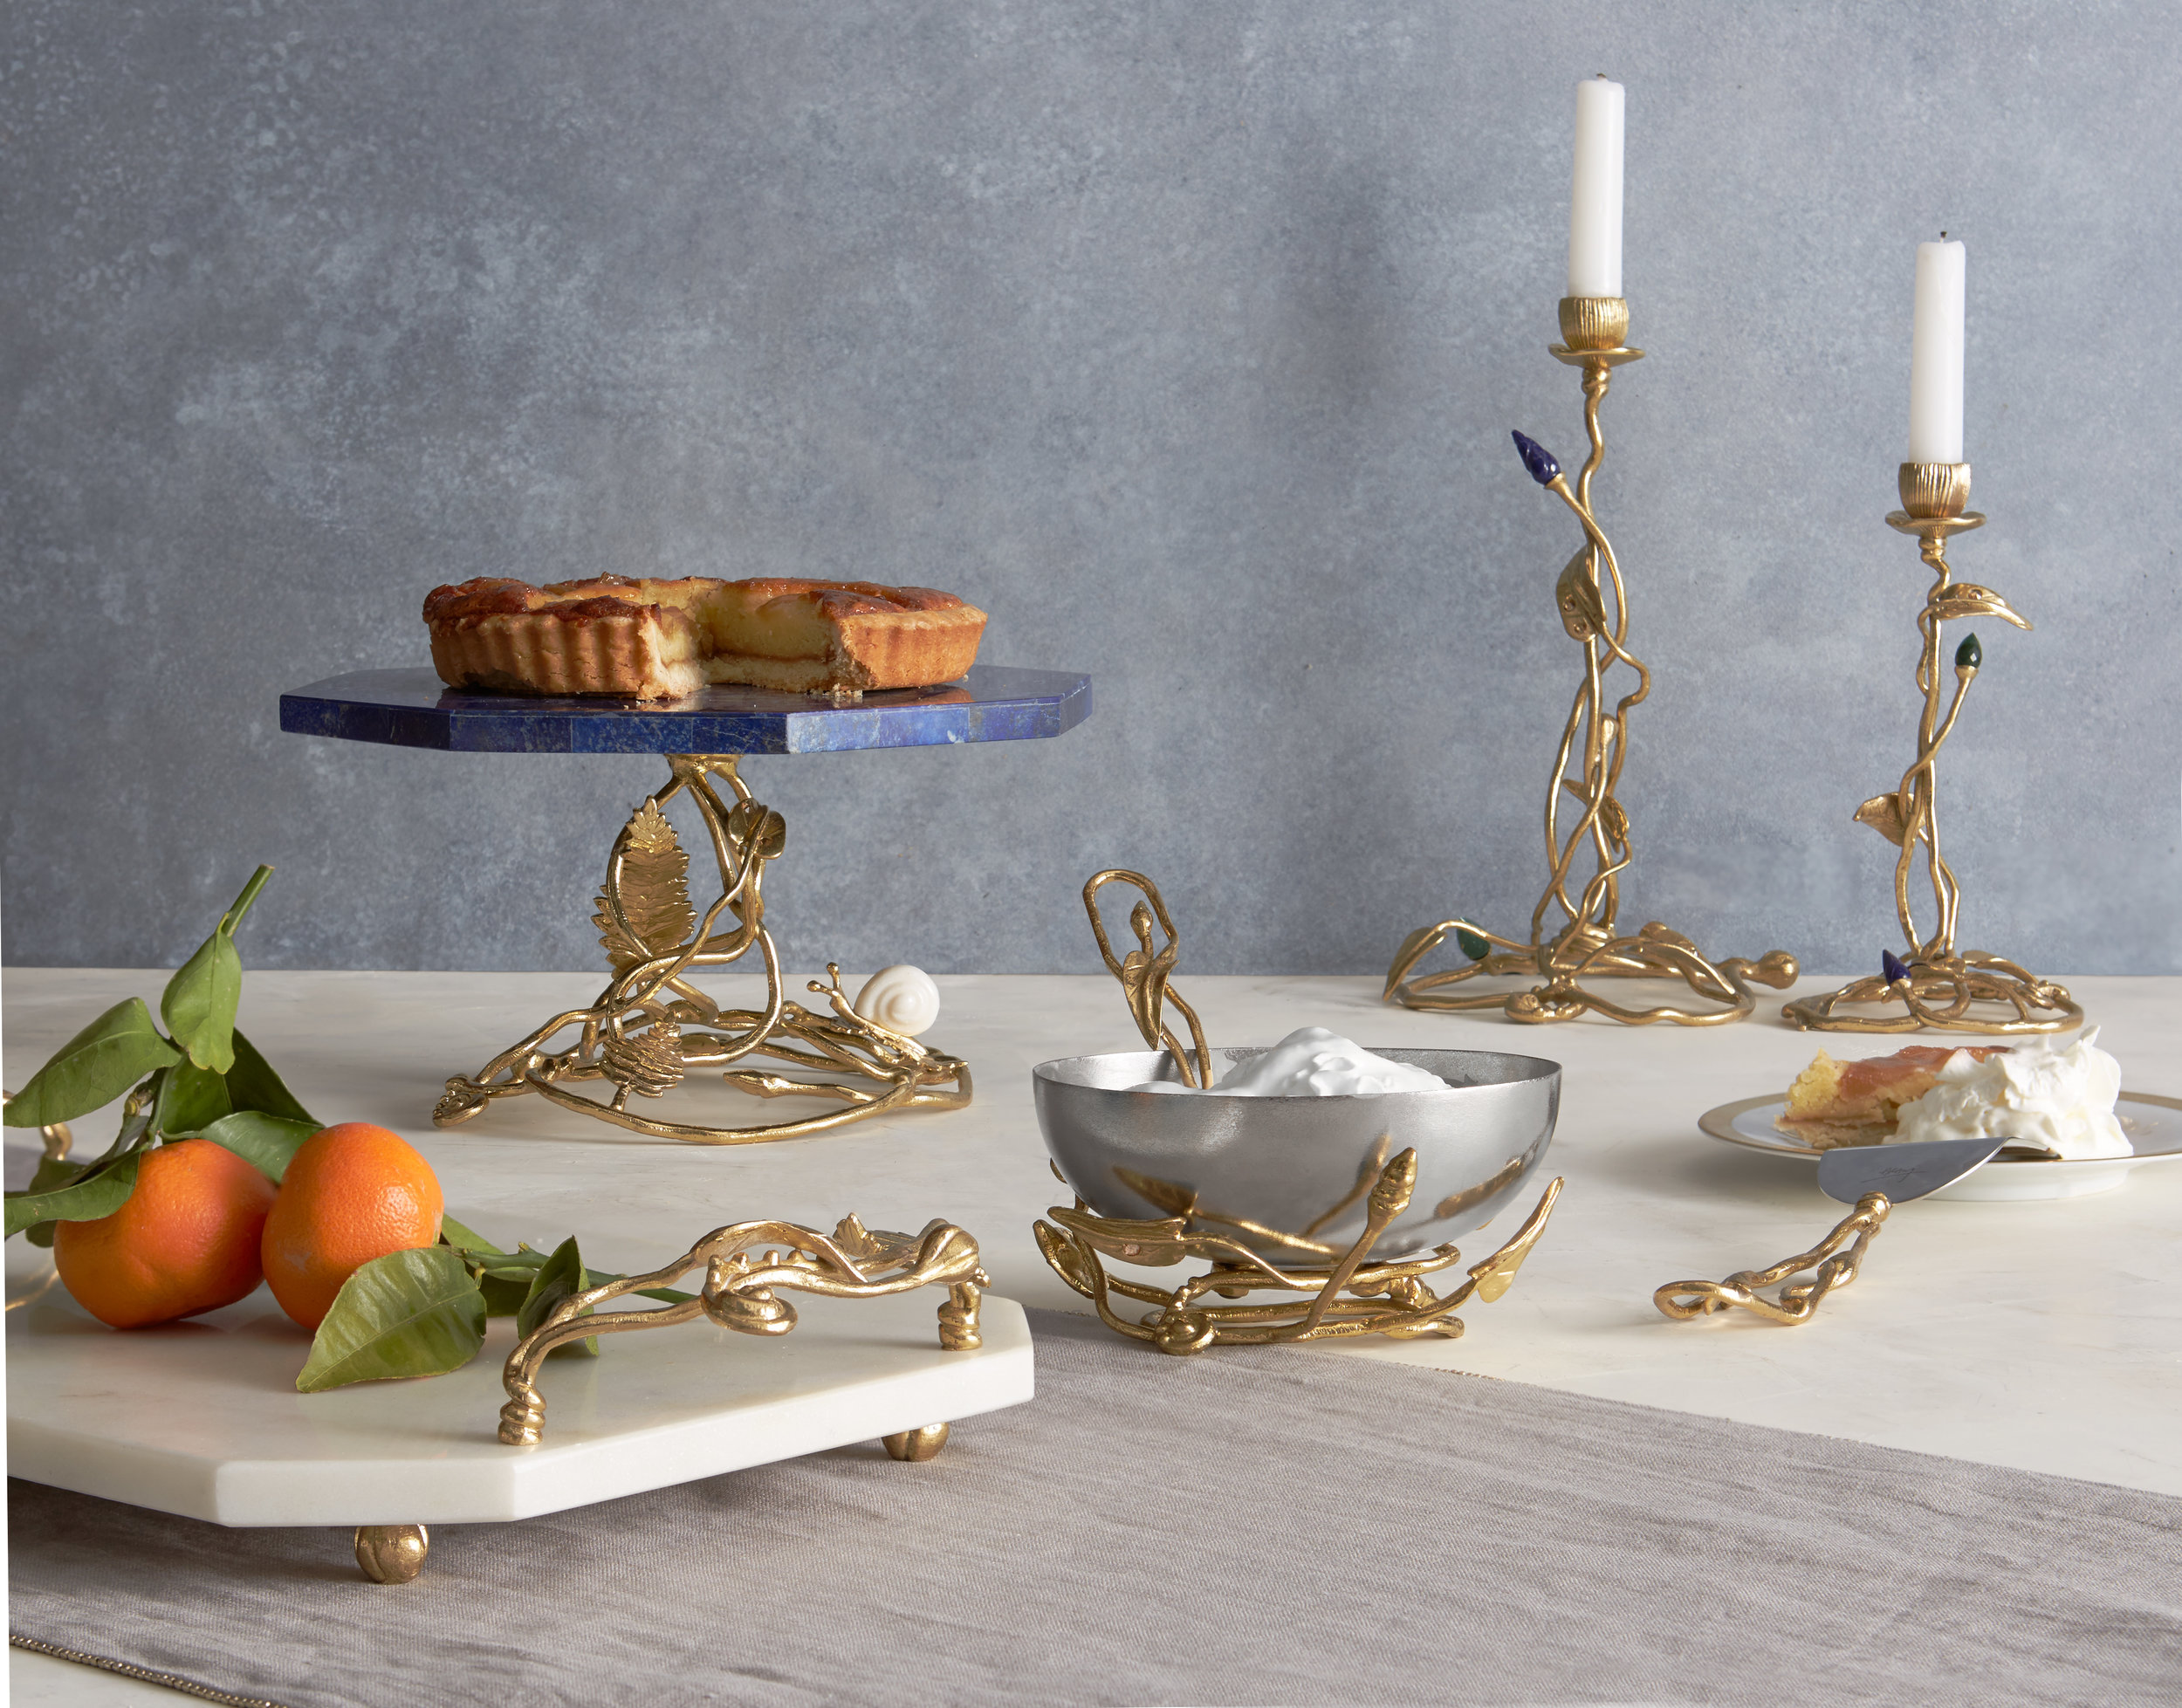 ENCHANTED GARDEN_cheese board_bowl_cake stand_candleholders_eblast.jpg